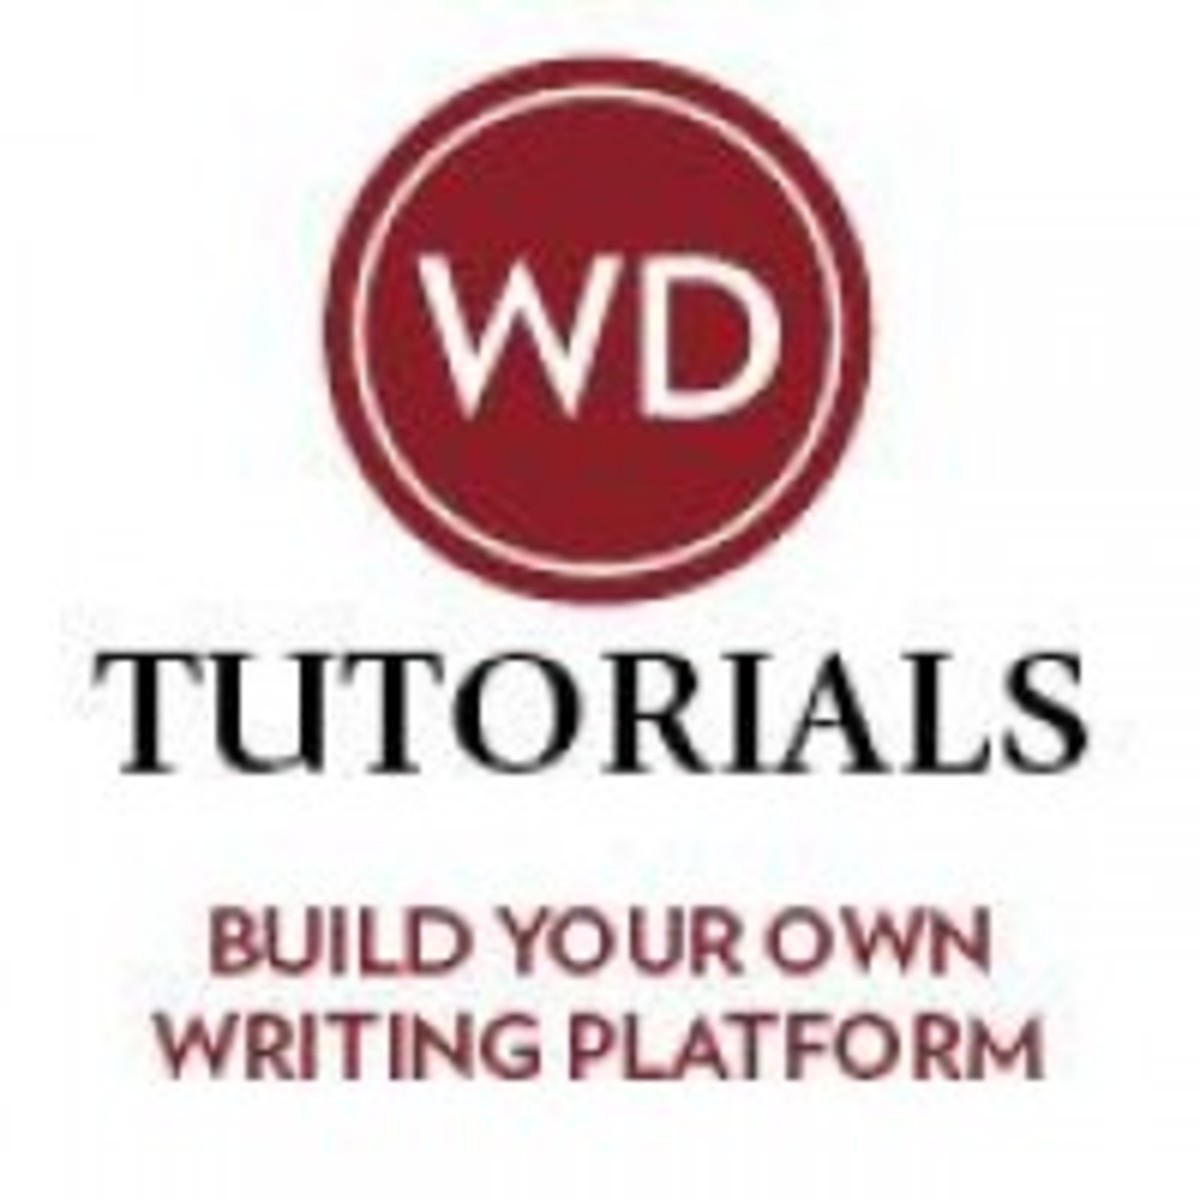 Build Your Own Writing Platform